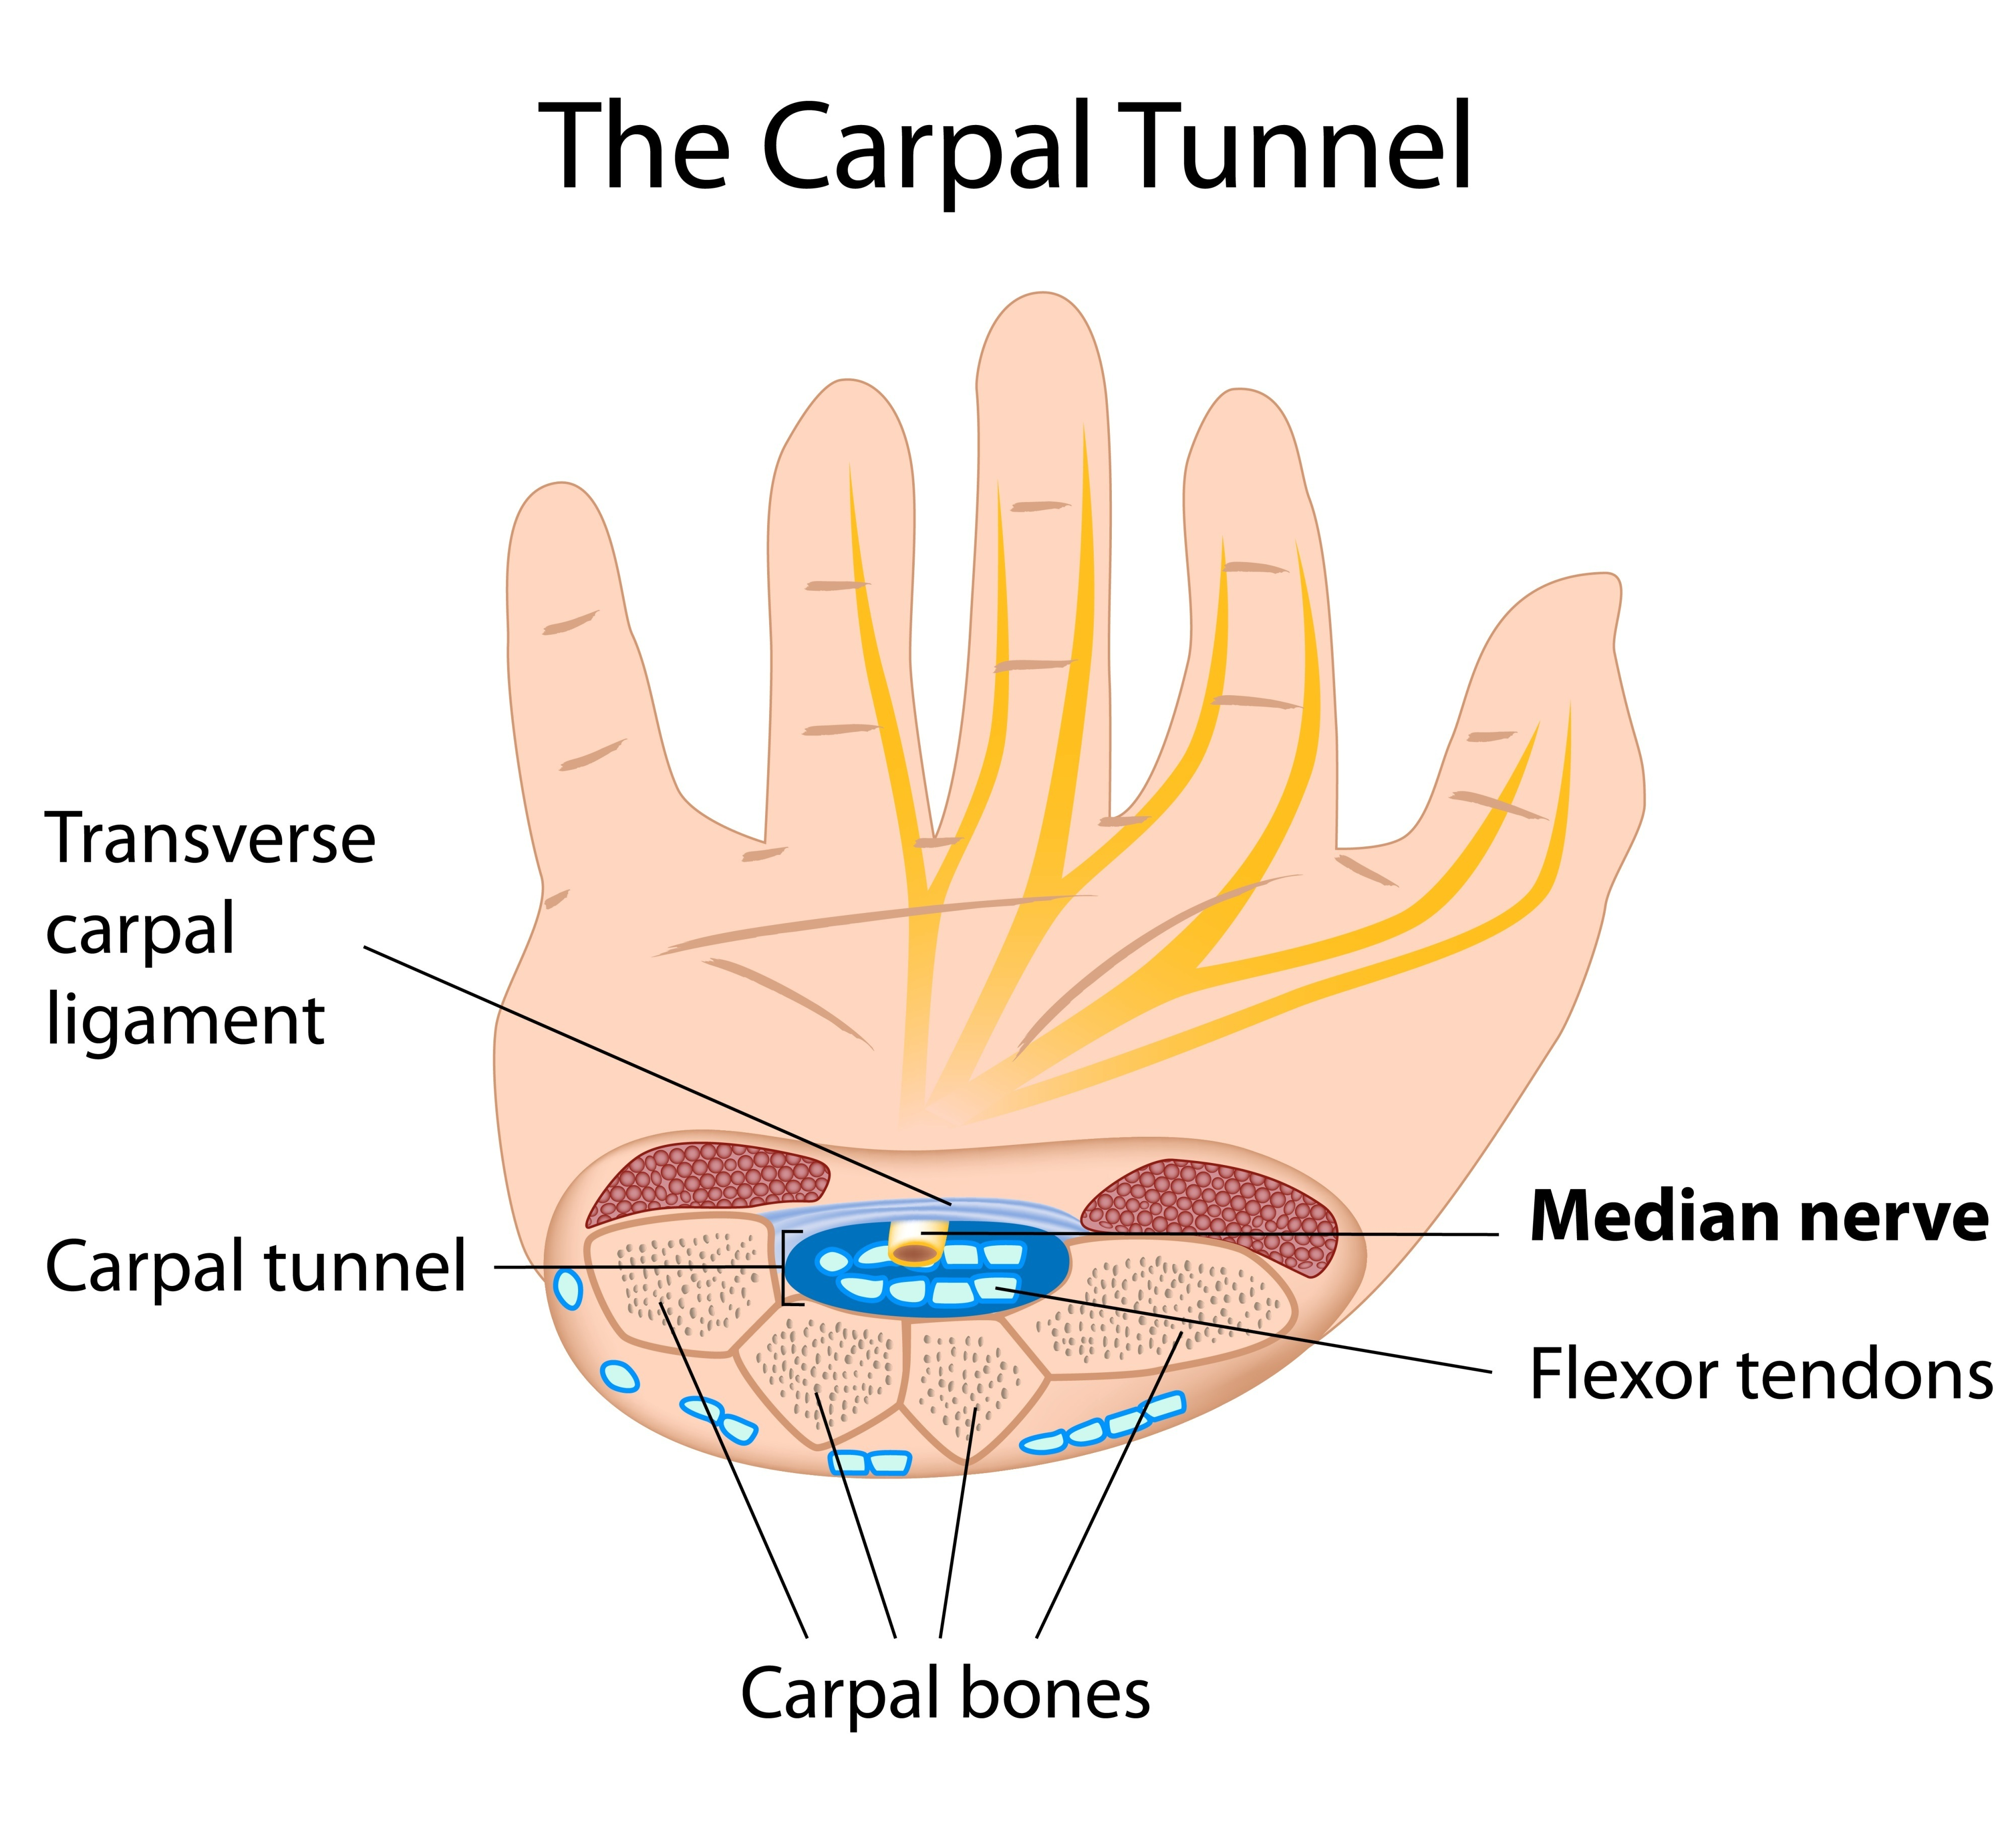 hand nerves diagram 99 dodge neon radio wiring explainer what is carpal tunnel syndrome and happens if i get it of the from www shutterstock com